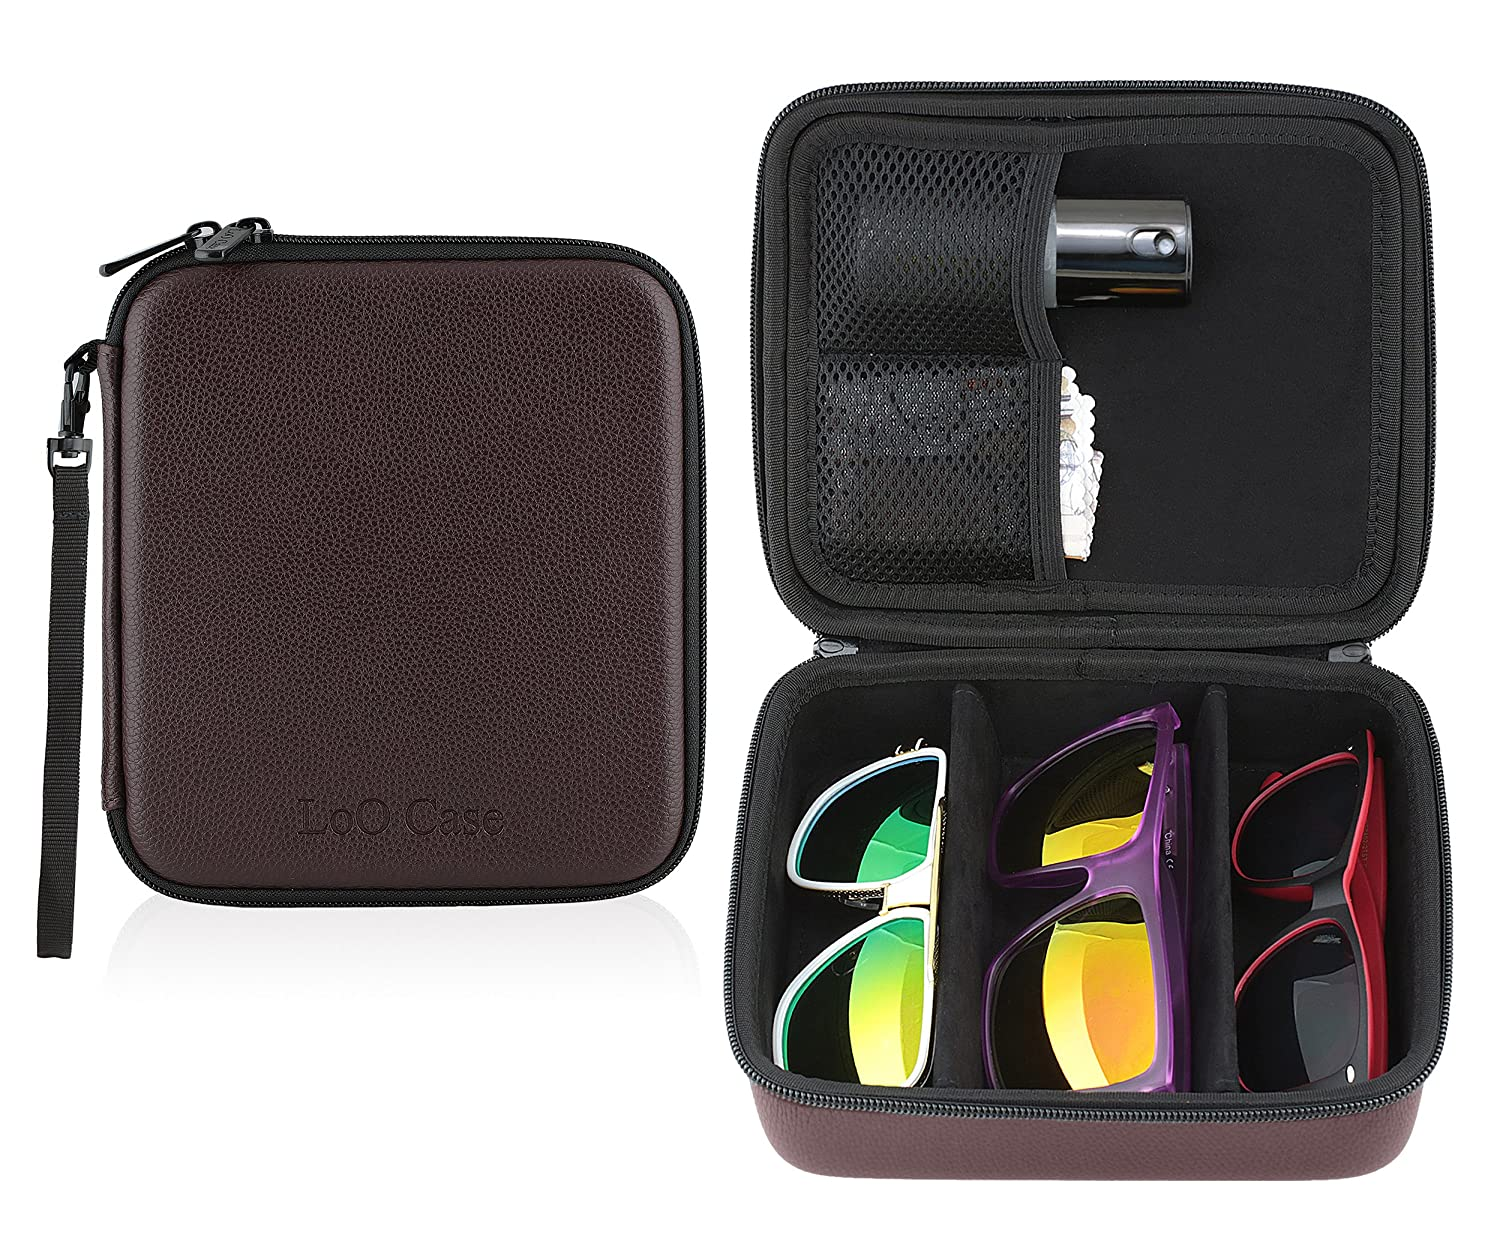 Eyeglass Sunglass Glasses Zippered Travel Storage Organizer 3 Compartment Case